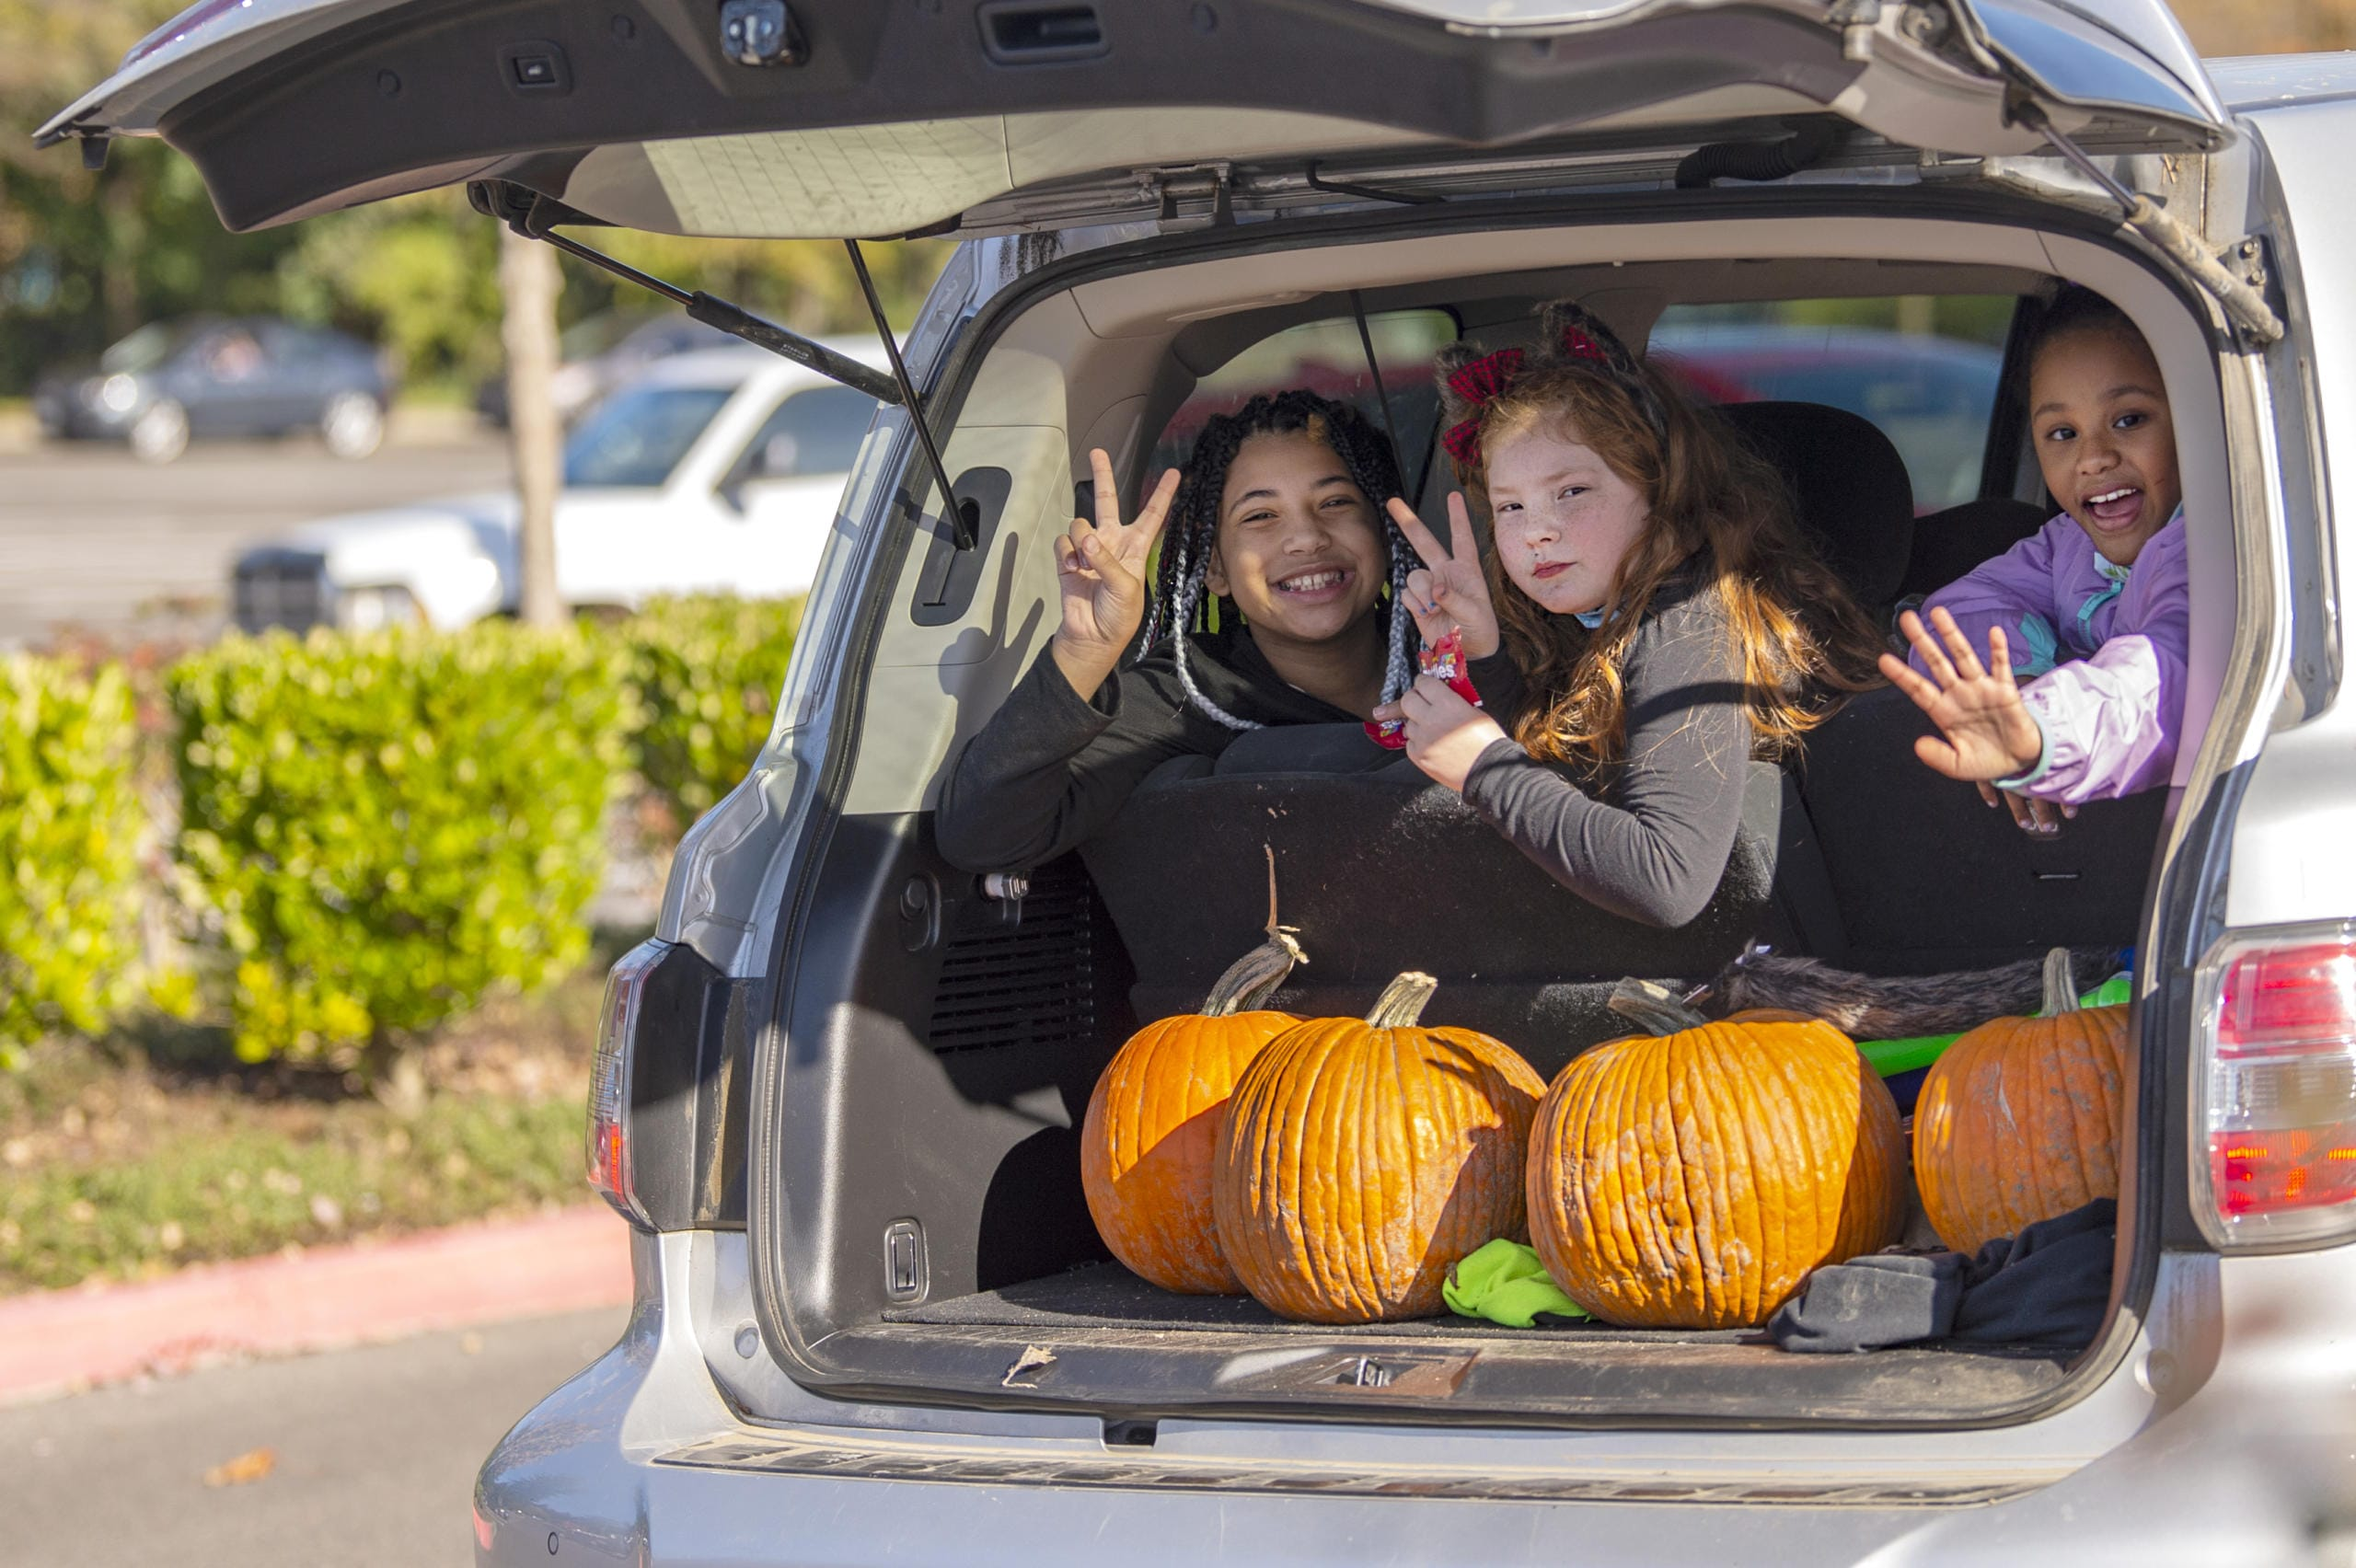 Kaia Silva, 11, from left, Juliann Galey, 9, and Leilani Quint, 9, smile and wave at the camera while looking out the back of an SUV as part of fourth annual Booville, a drive-through Halloween event put on by the Parks Foundation of Clark County at Vancouver Mall on Saturday. (Joshua Hart/The Columbian